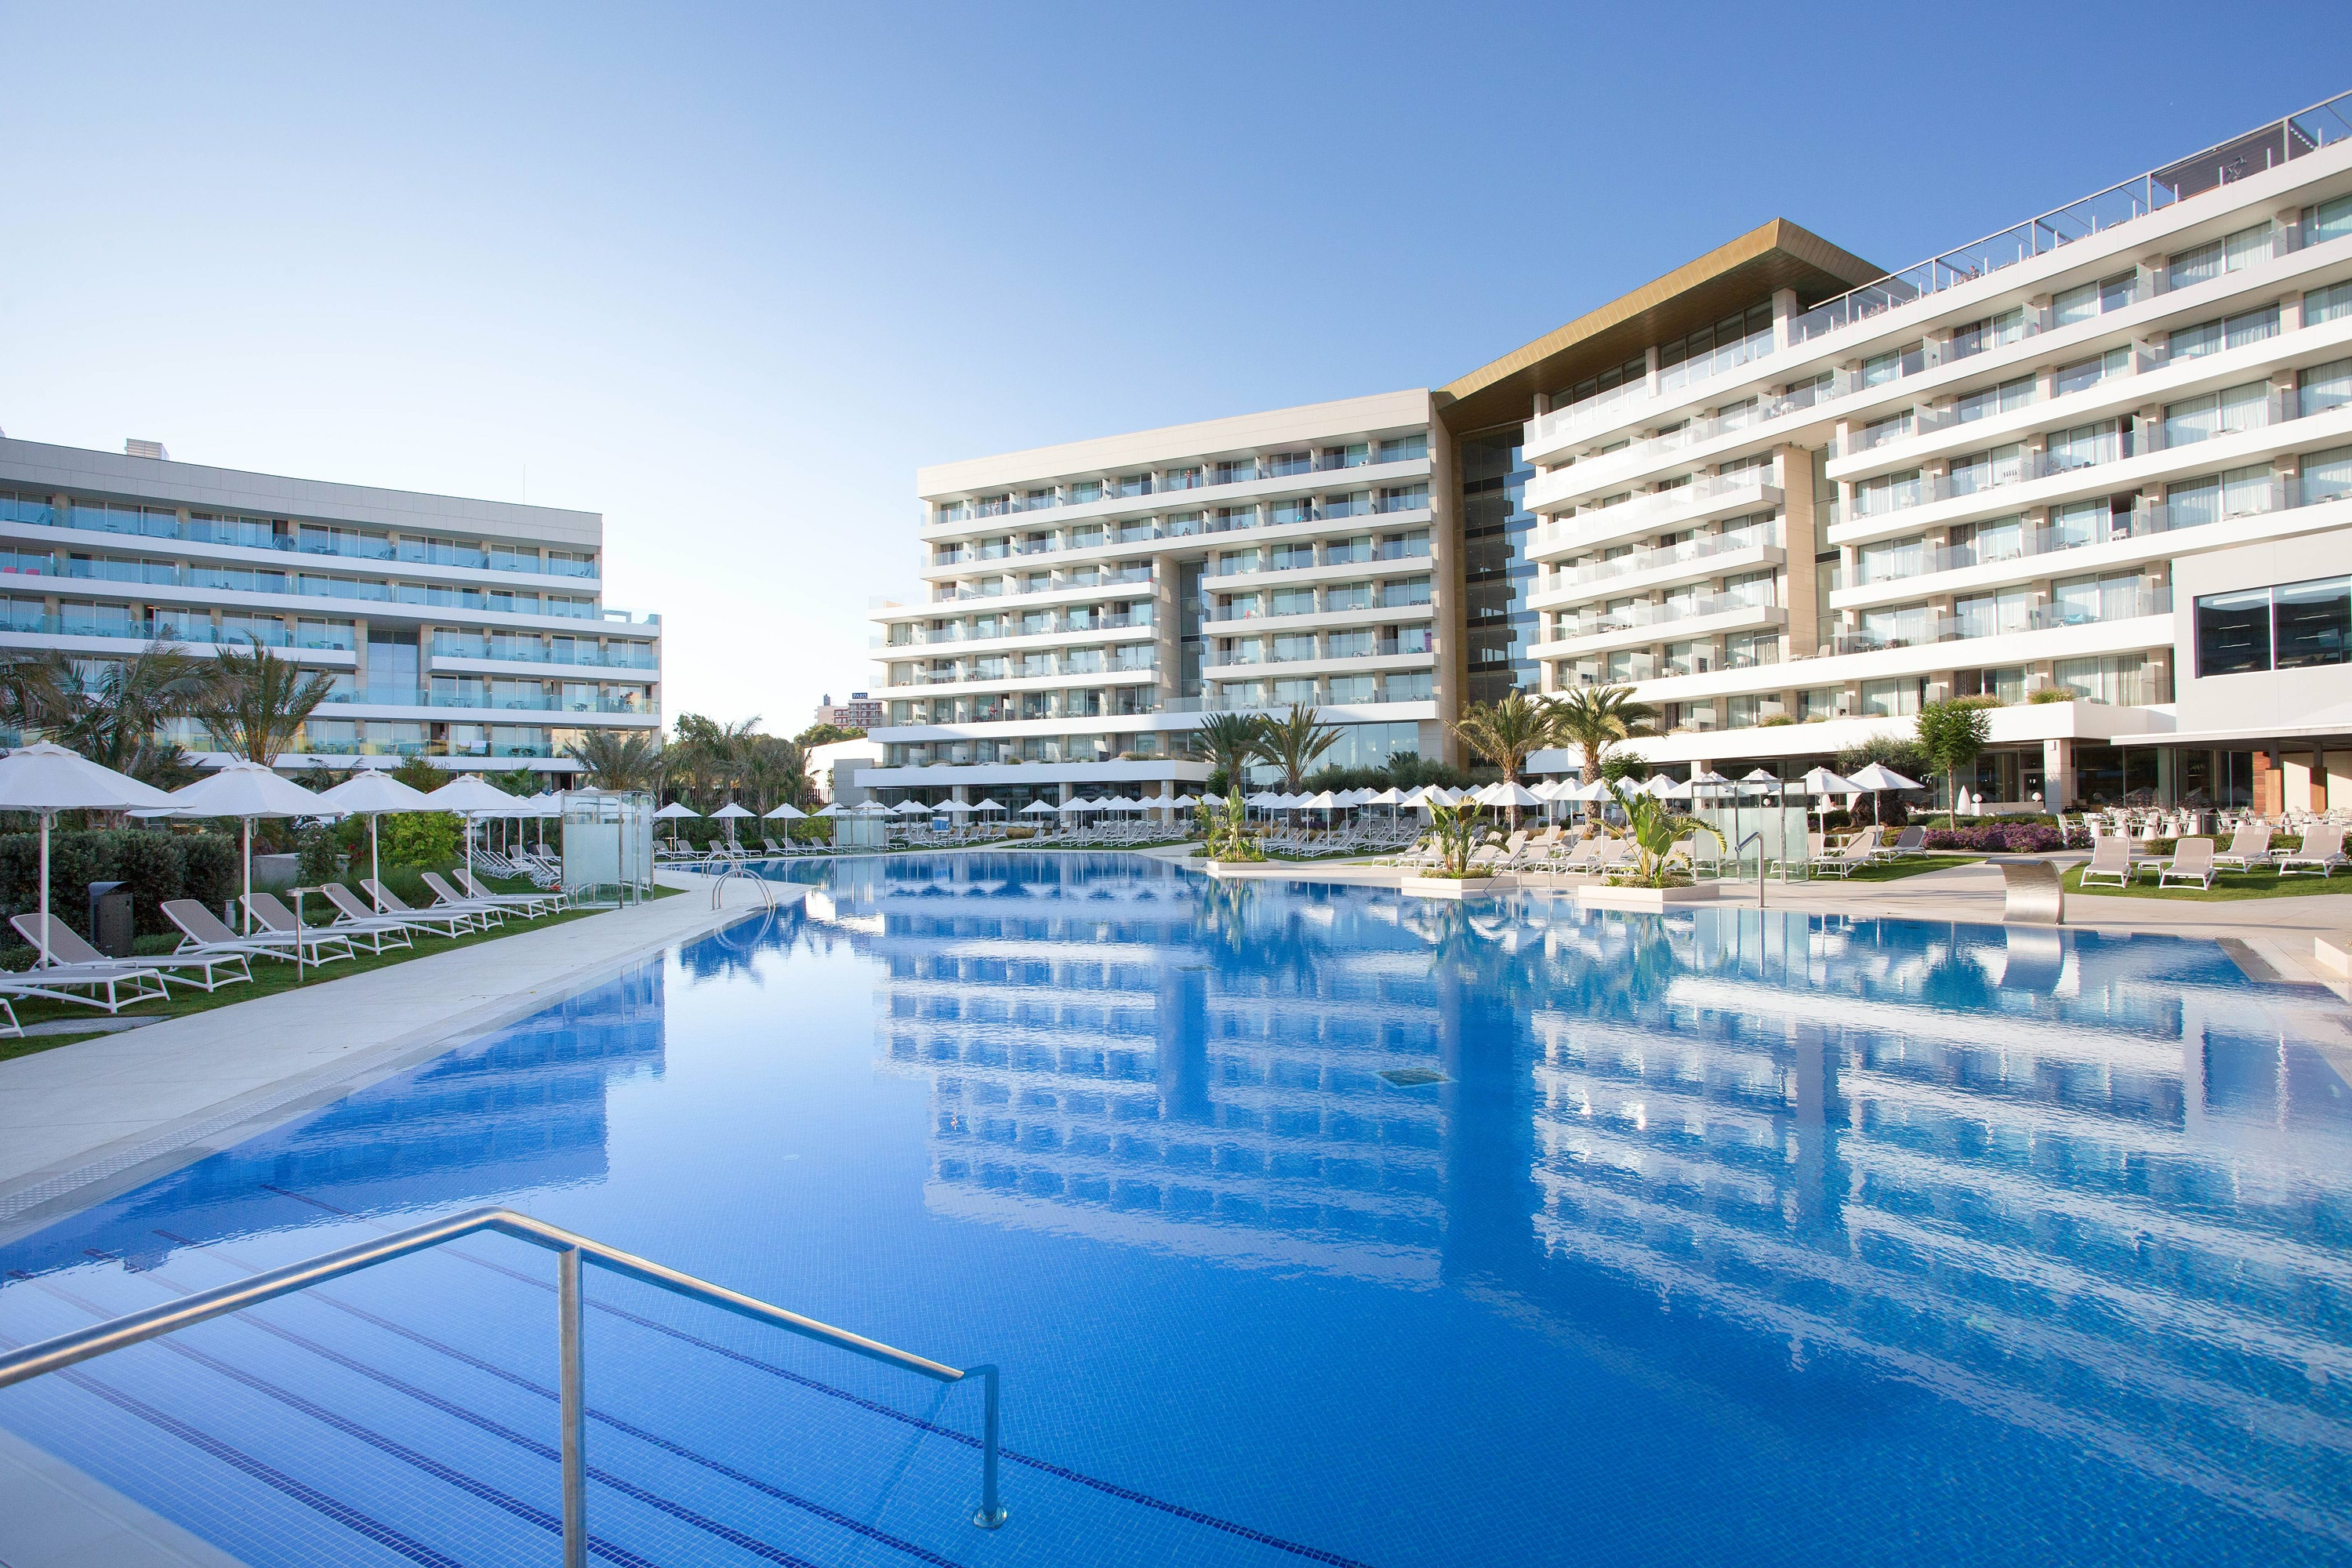 Hipotels Playa de Palma Palace pool and building 2